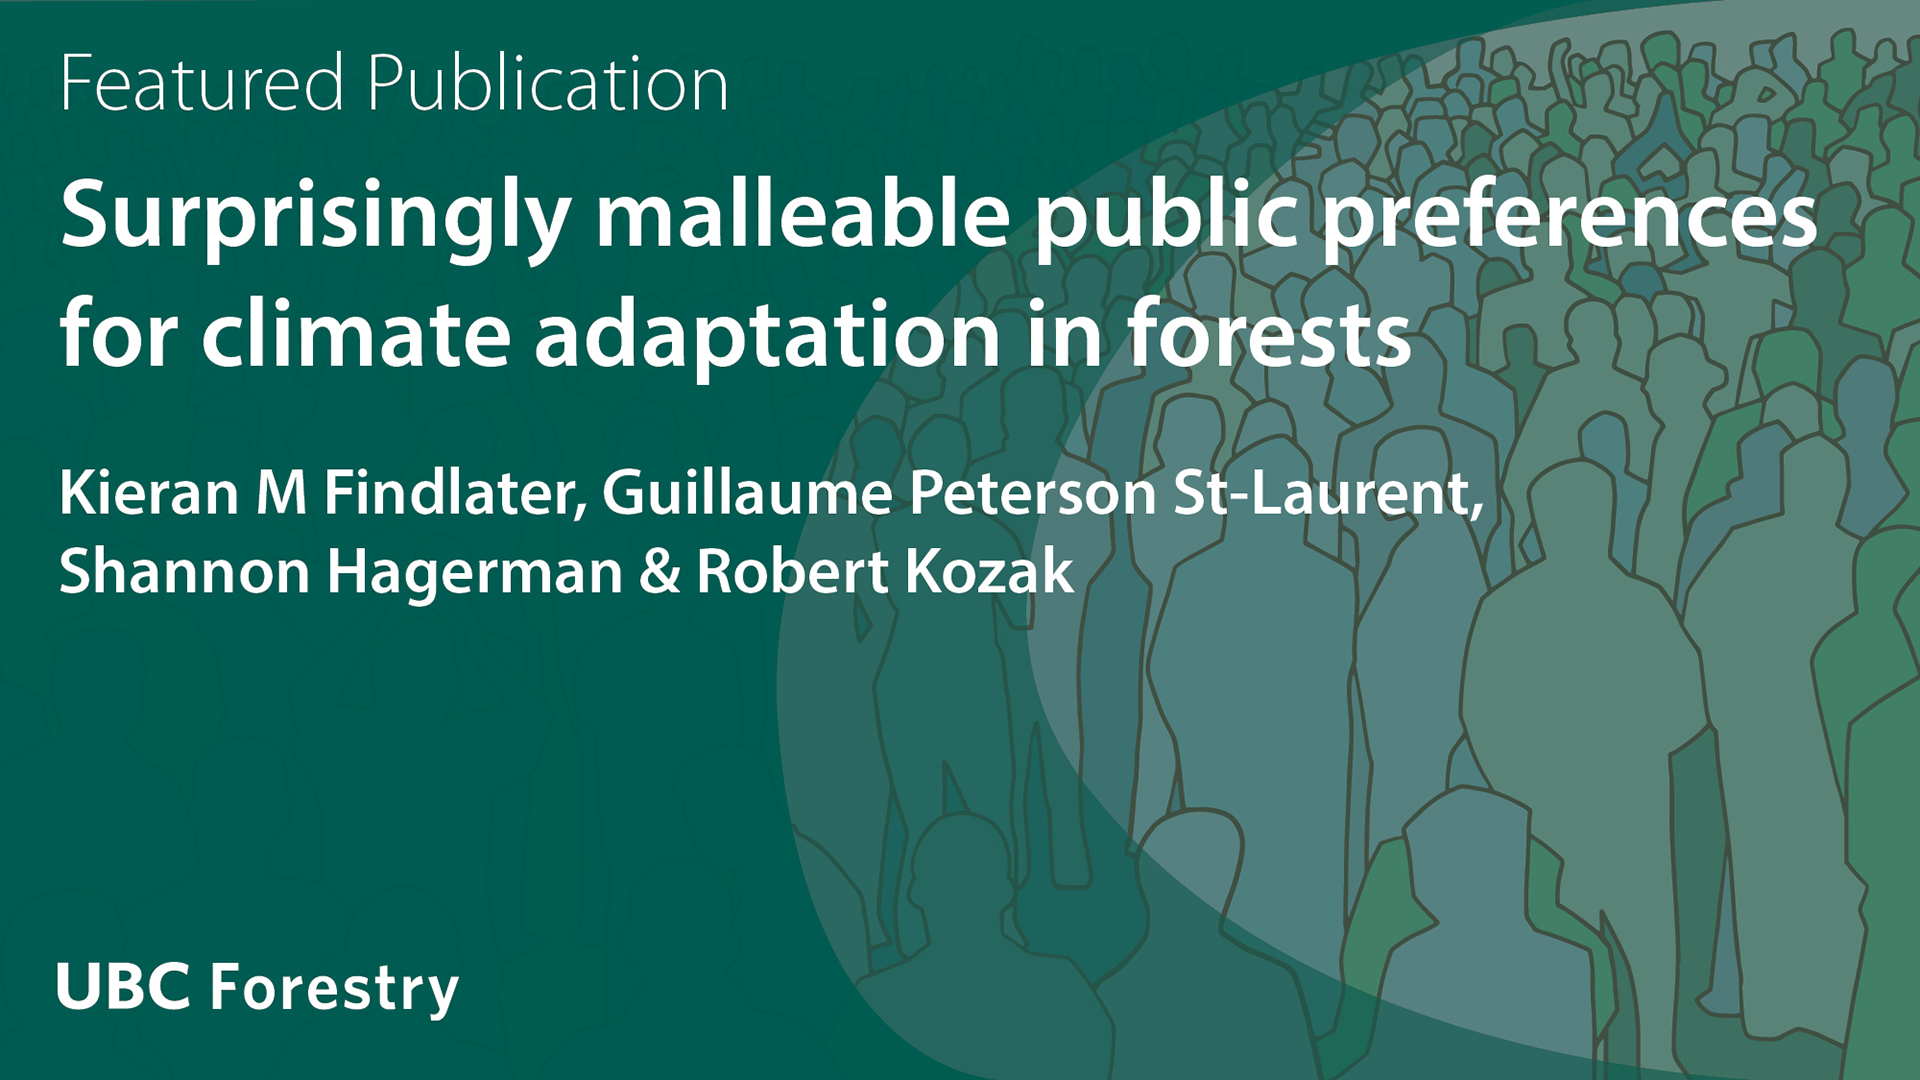 Surprisingly Malleable Public Preferences for Climate Adaptation in Forests